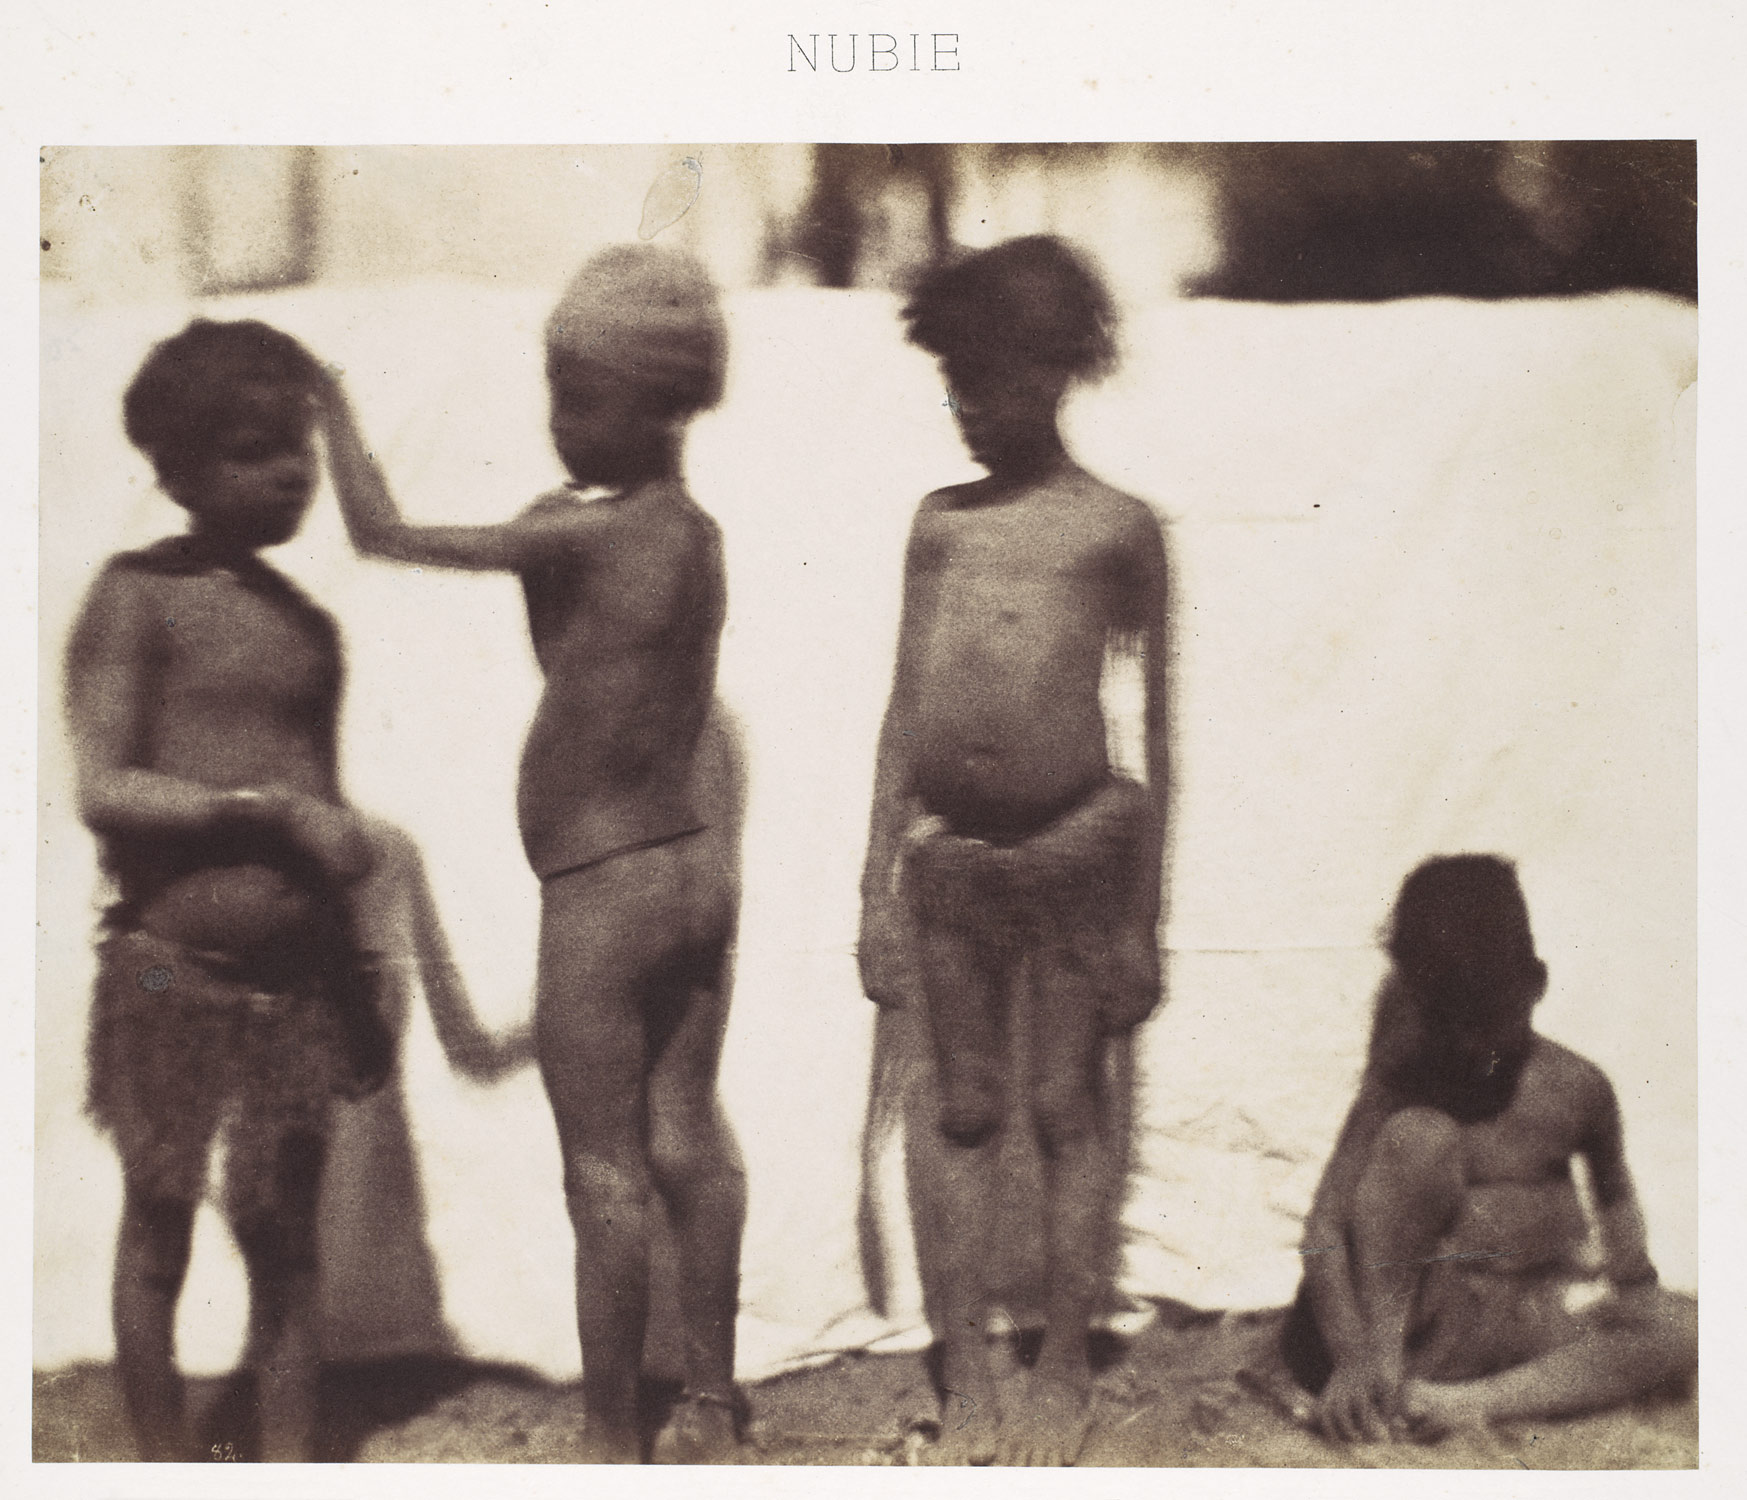 [Children from the Village of Kalabshah, Nubia]